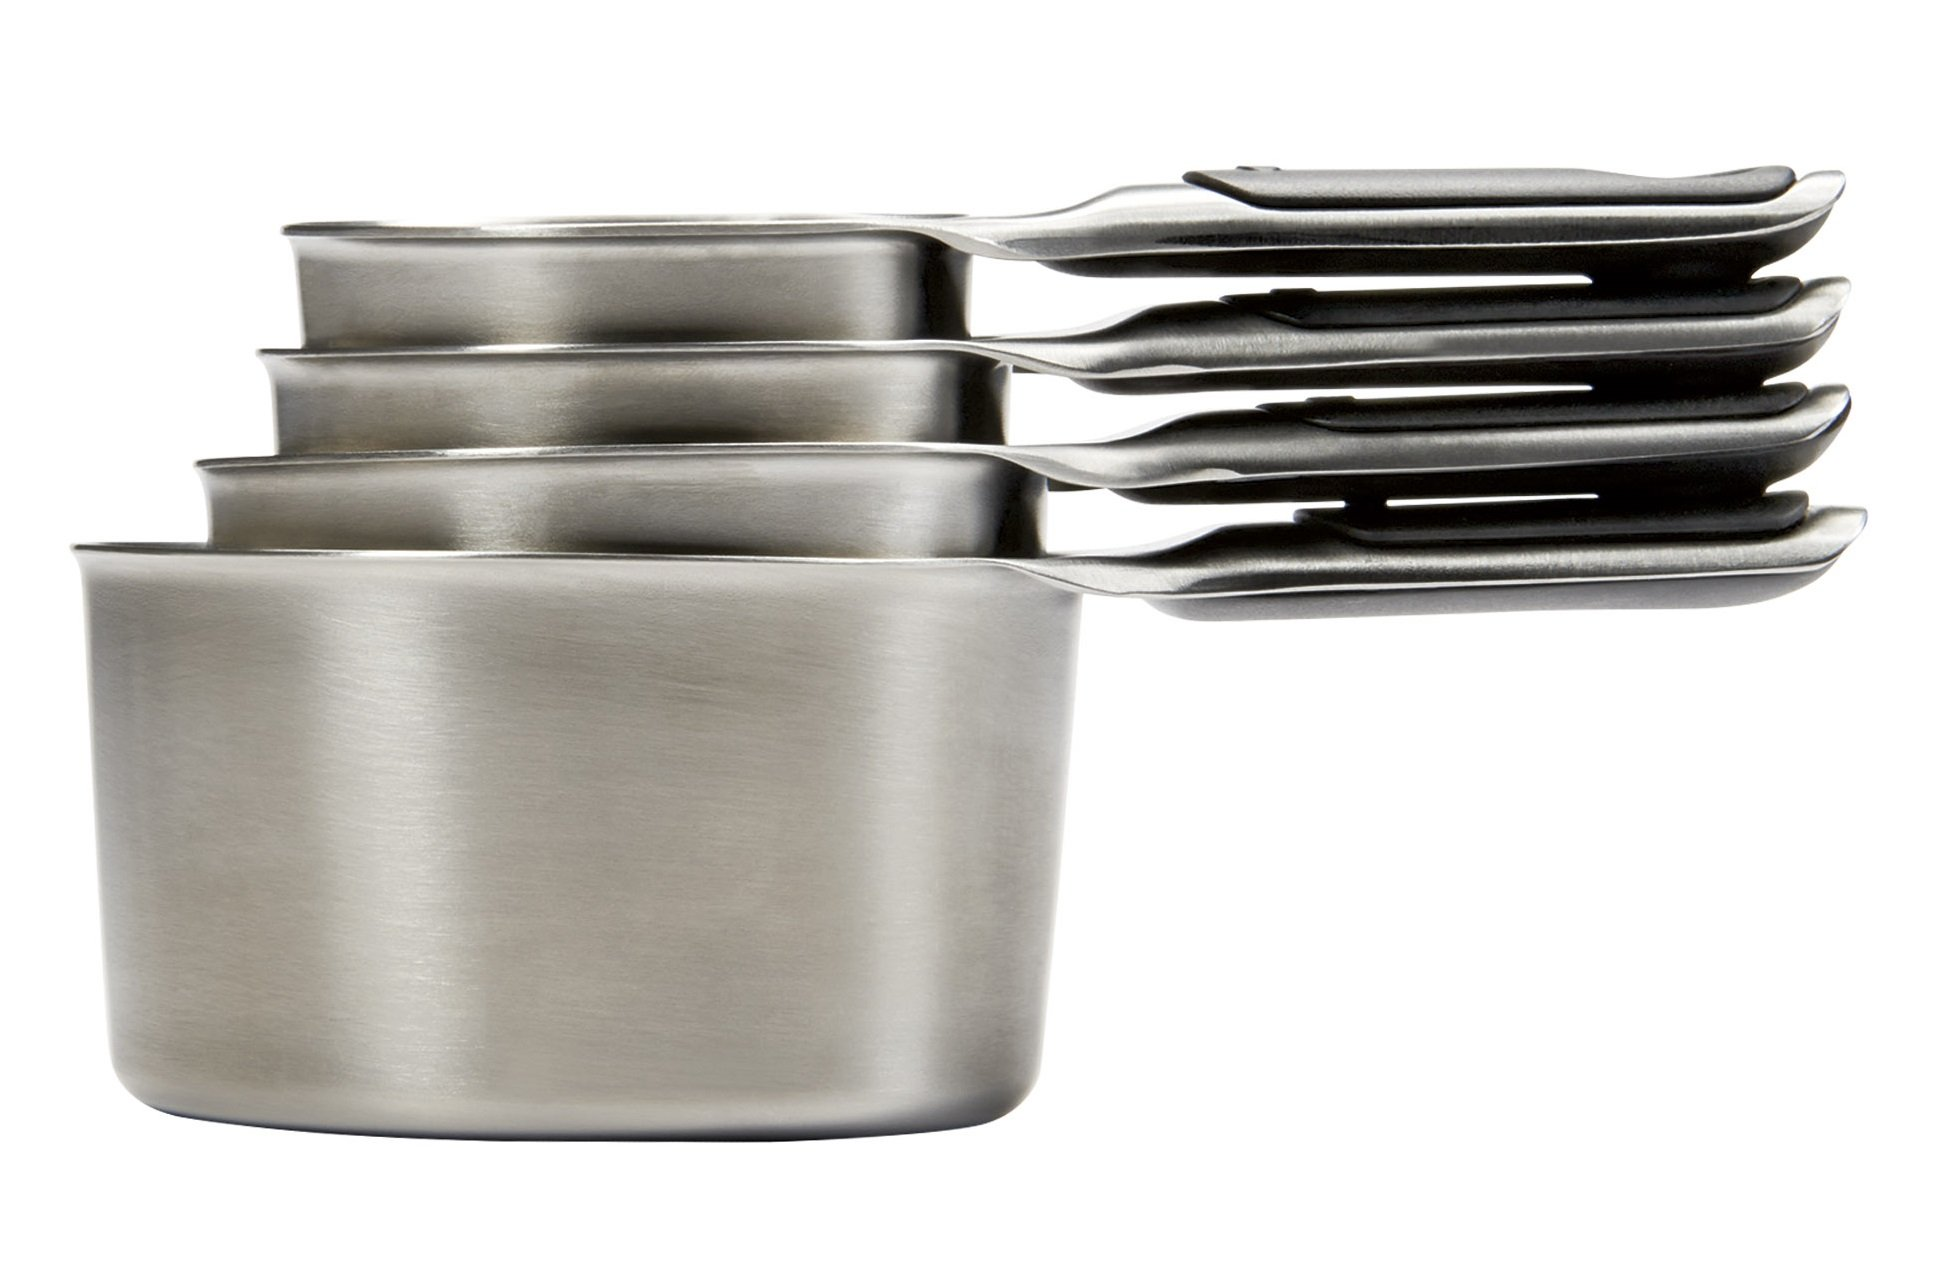 OXO Good Grips Measuring Cup Set - Stainless steel by OXO